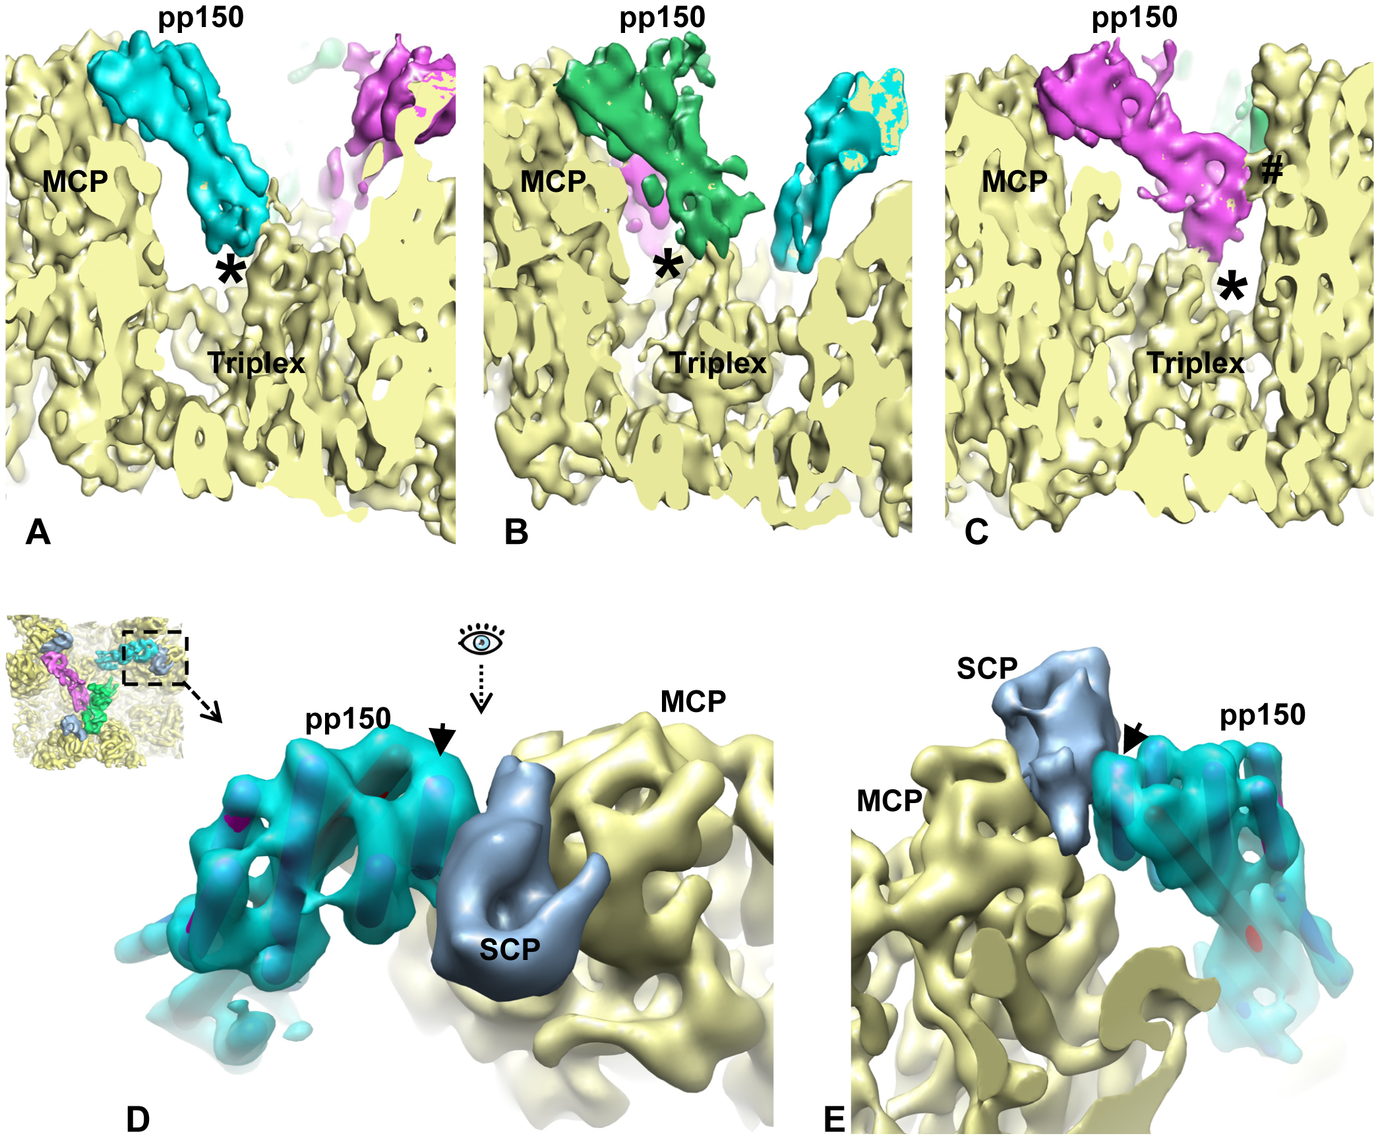 SCP mediates pp150 binding to the capsid.